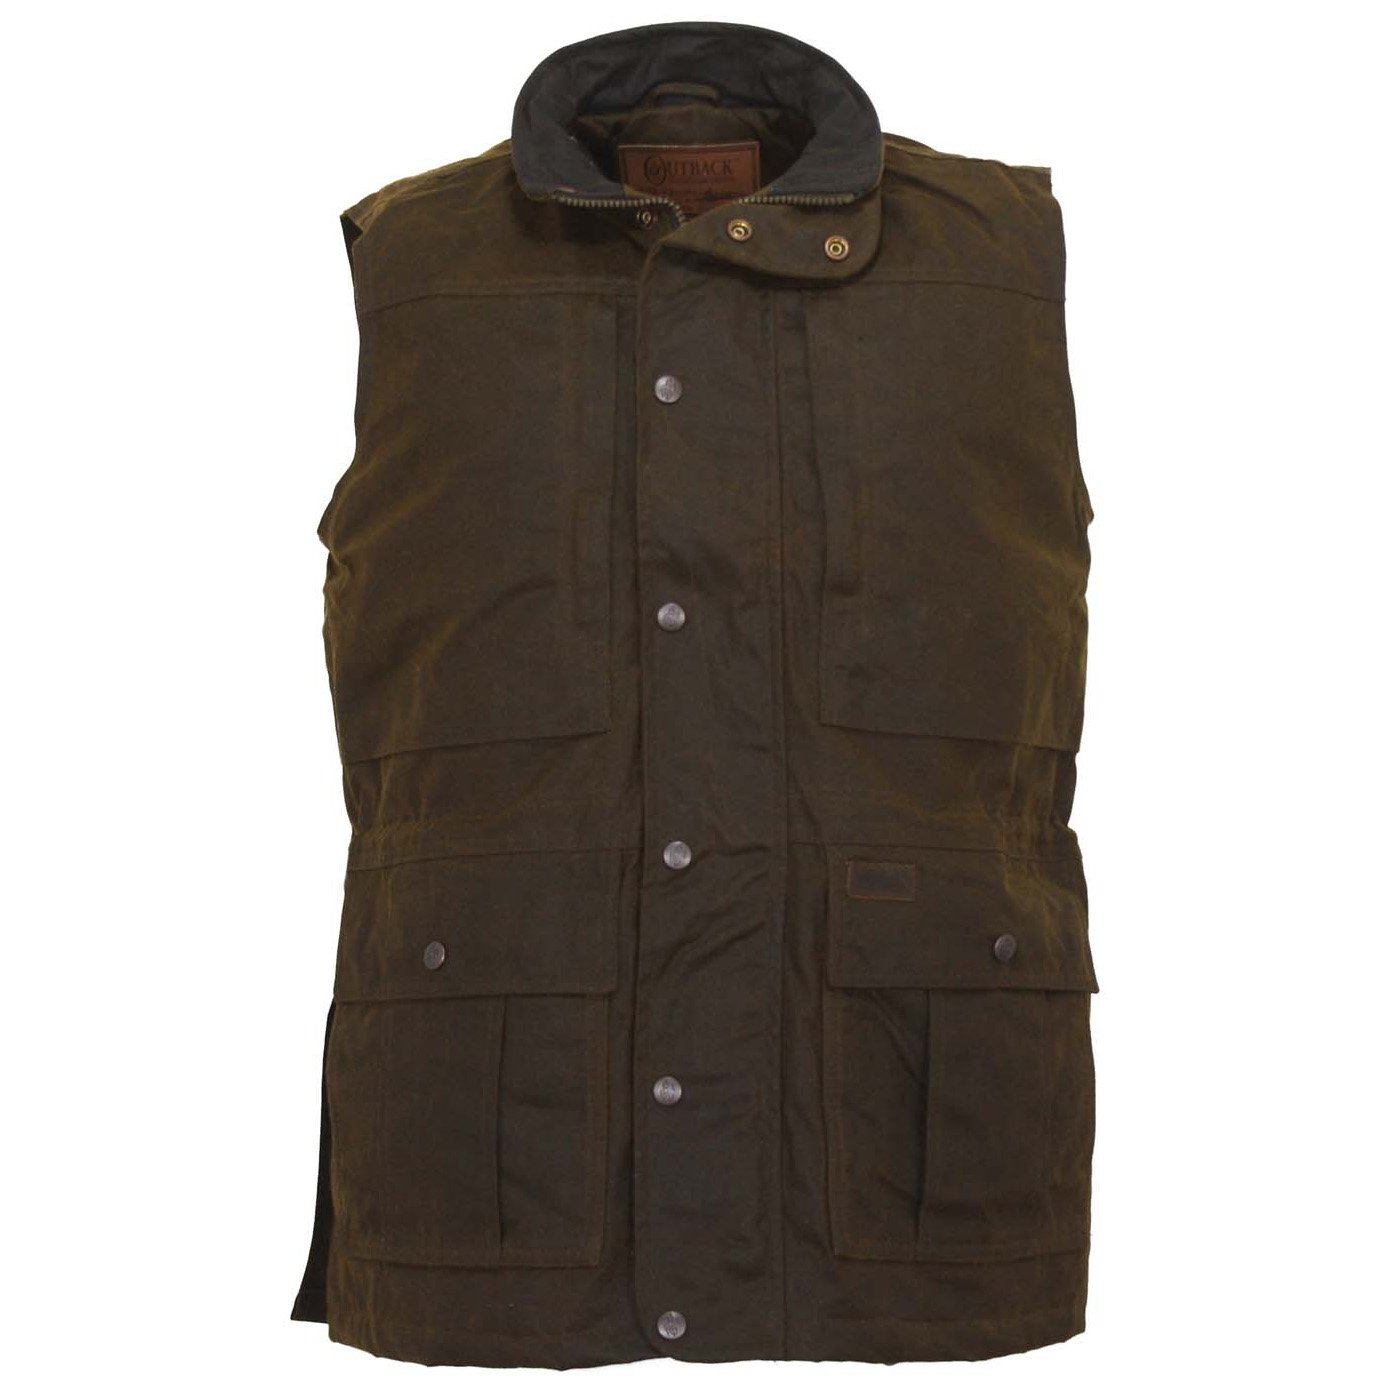 Outback Trading Mens Oilskin Barn Vest S by Outback Trading